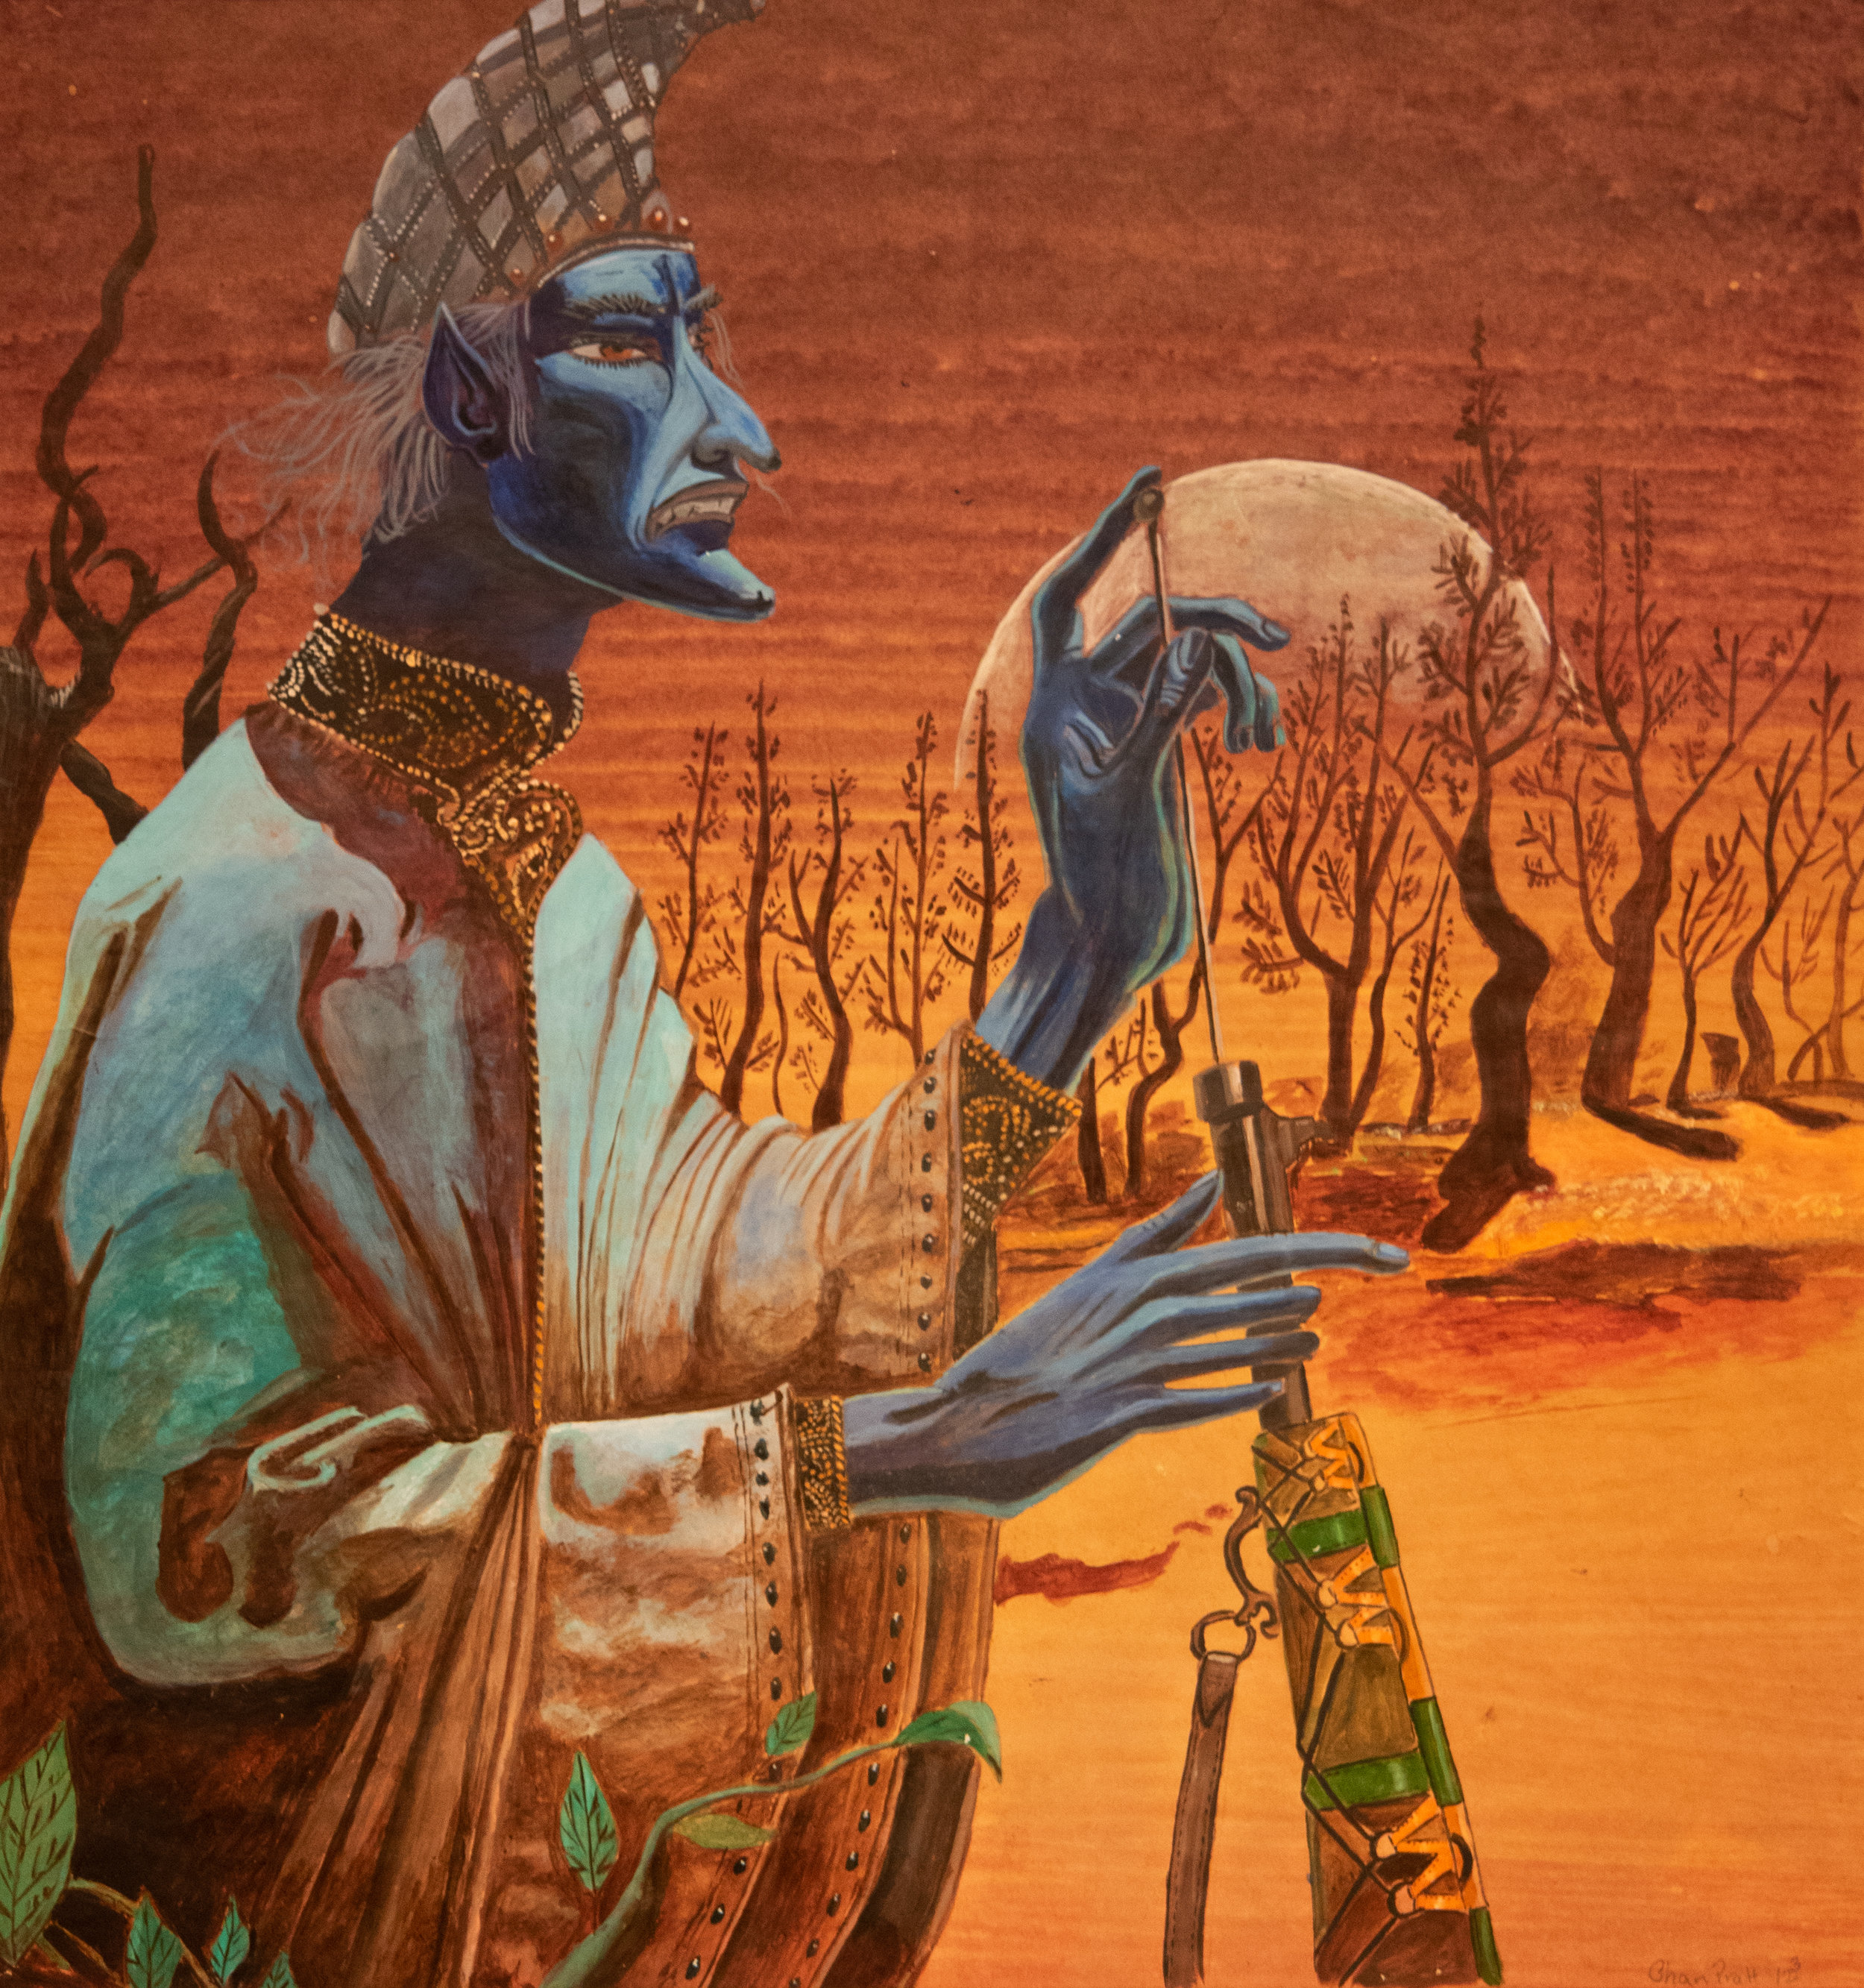 """Warrior God"" (1982), Chan Pratt, acrylic on paper, 18 ½ x 17 ½ inches. Part of the Chan Pratt Foundation Collection."